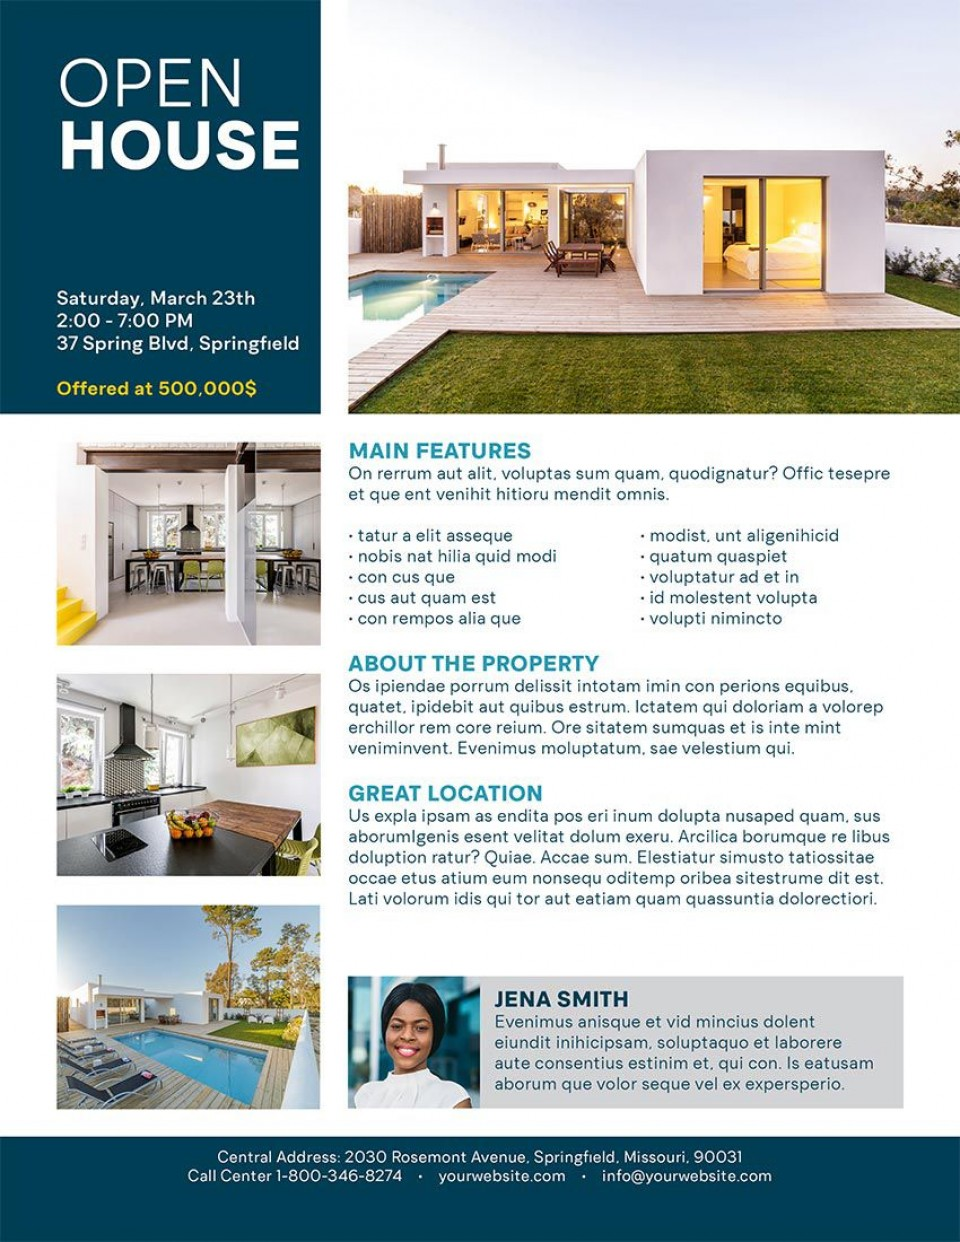 001 Archaicawful Open House Flyer Template Example  Word Free School Microsoft960